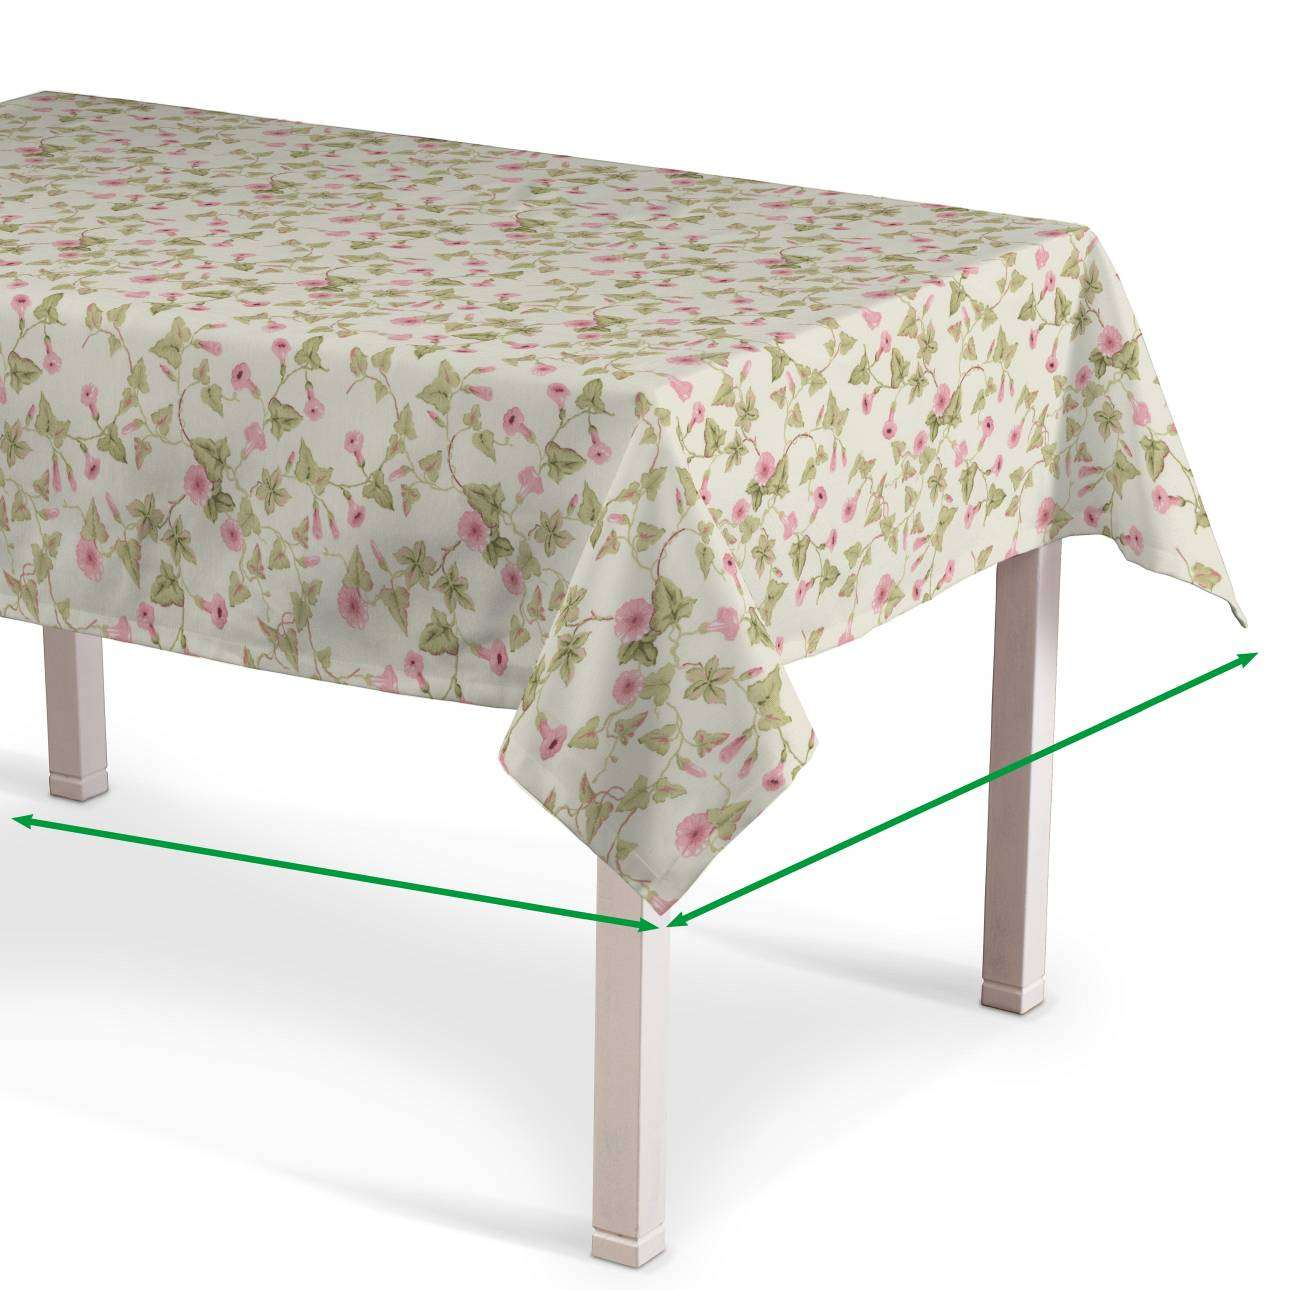 Rectangular tablecloth in collection Mirella, fabric: 140-41